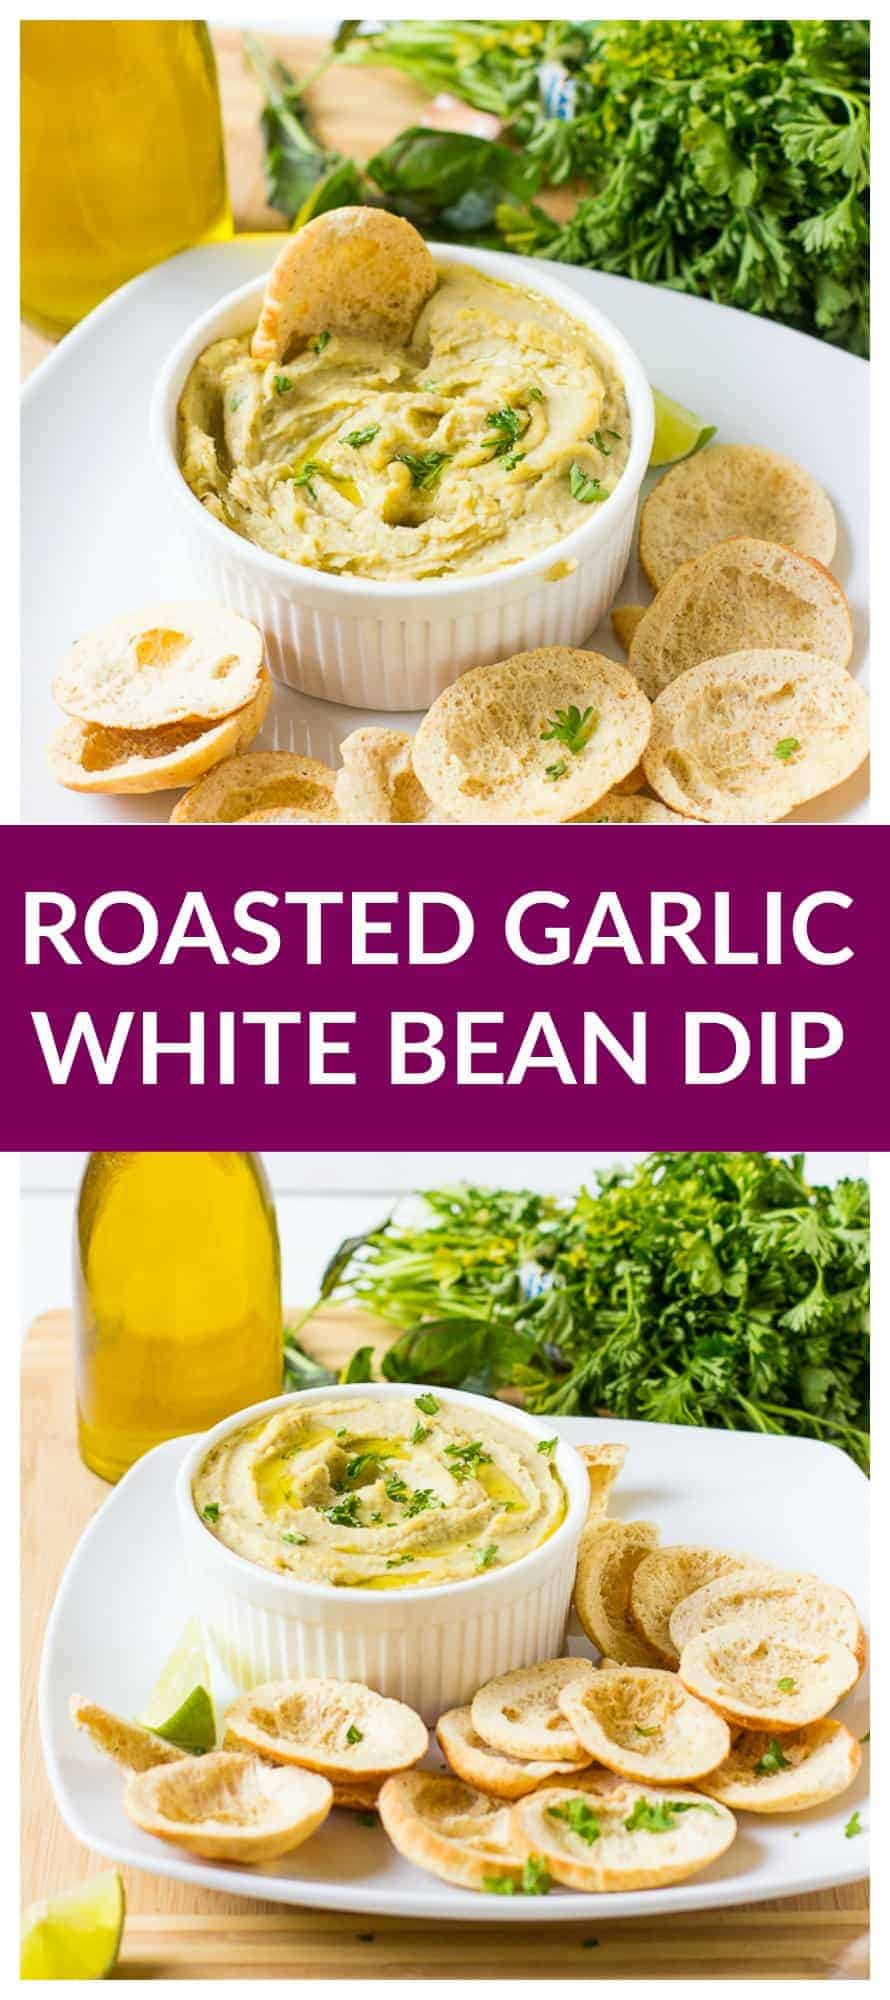 This Herbed Roasted Garlic White Bean Dip is ready in just 15 minutes! It's a delicious smooth vegan dip that will be perfect at your parties!